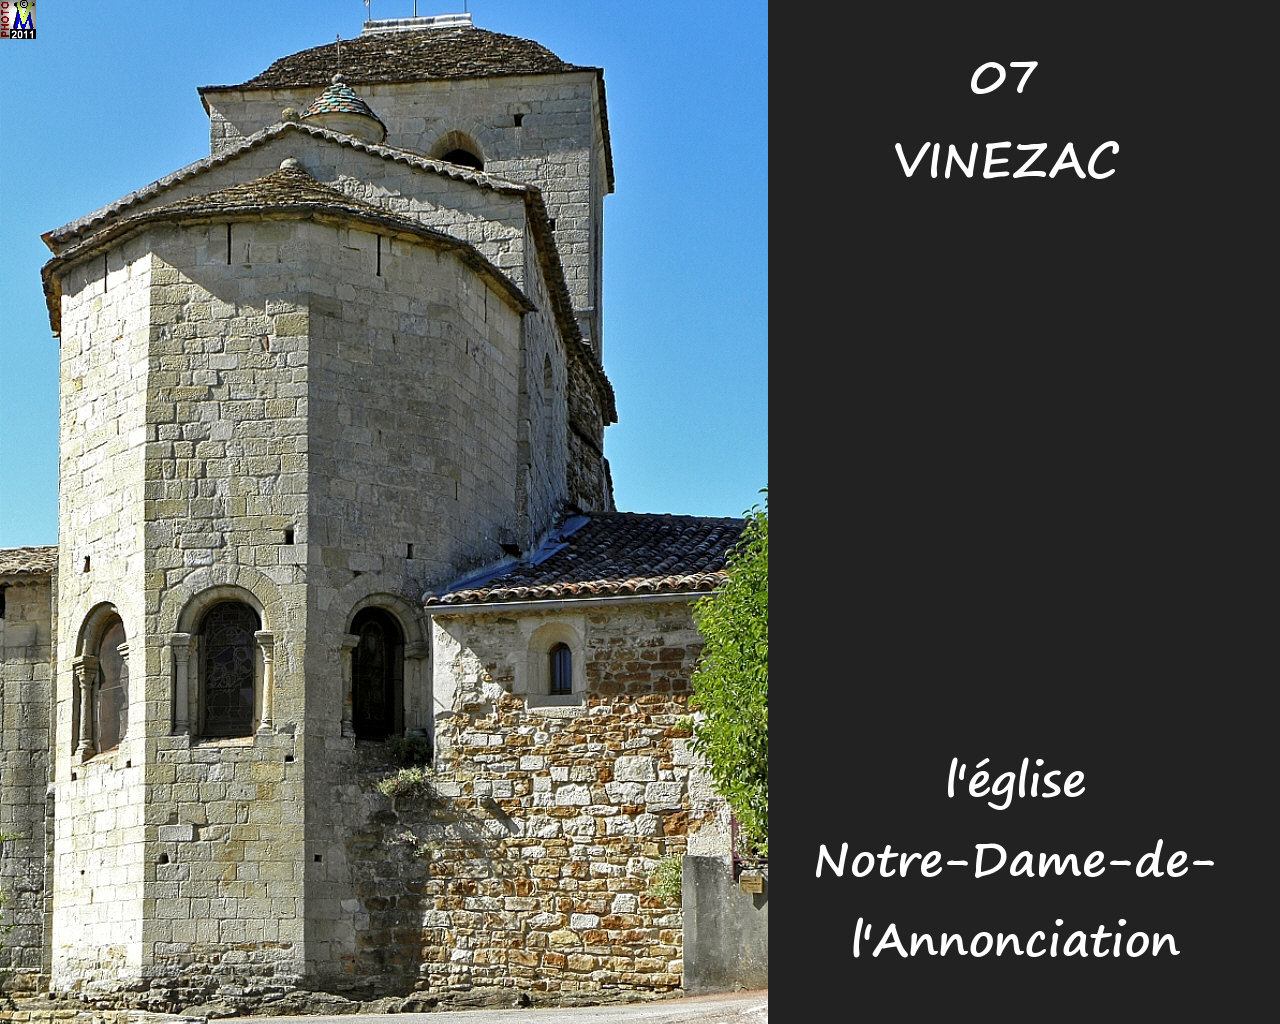 07VINEZAC_eglise_102.jpg